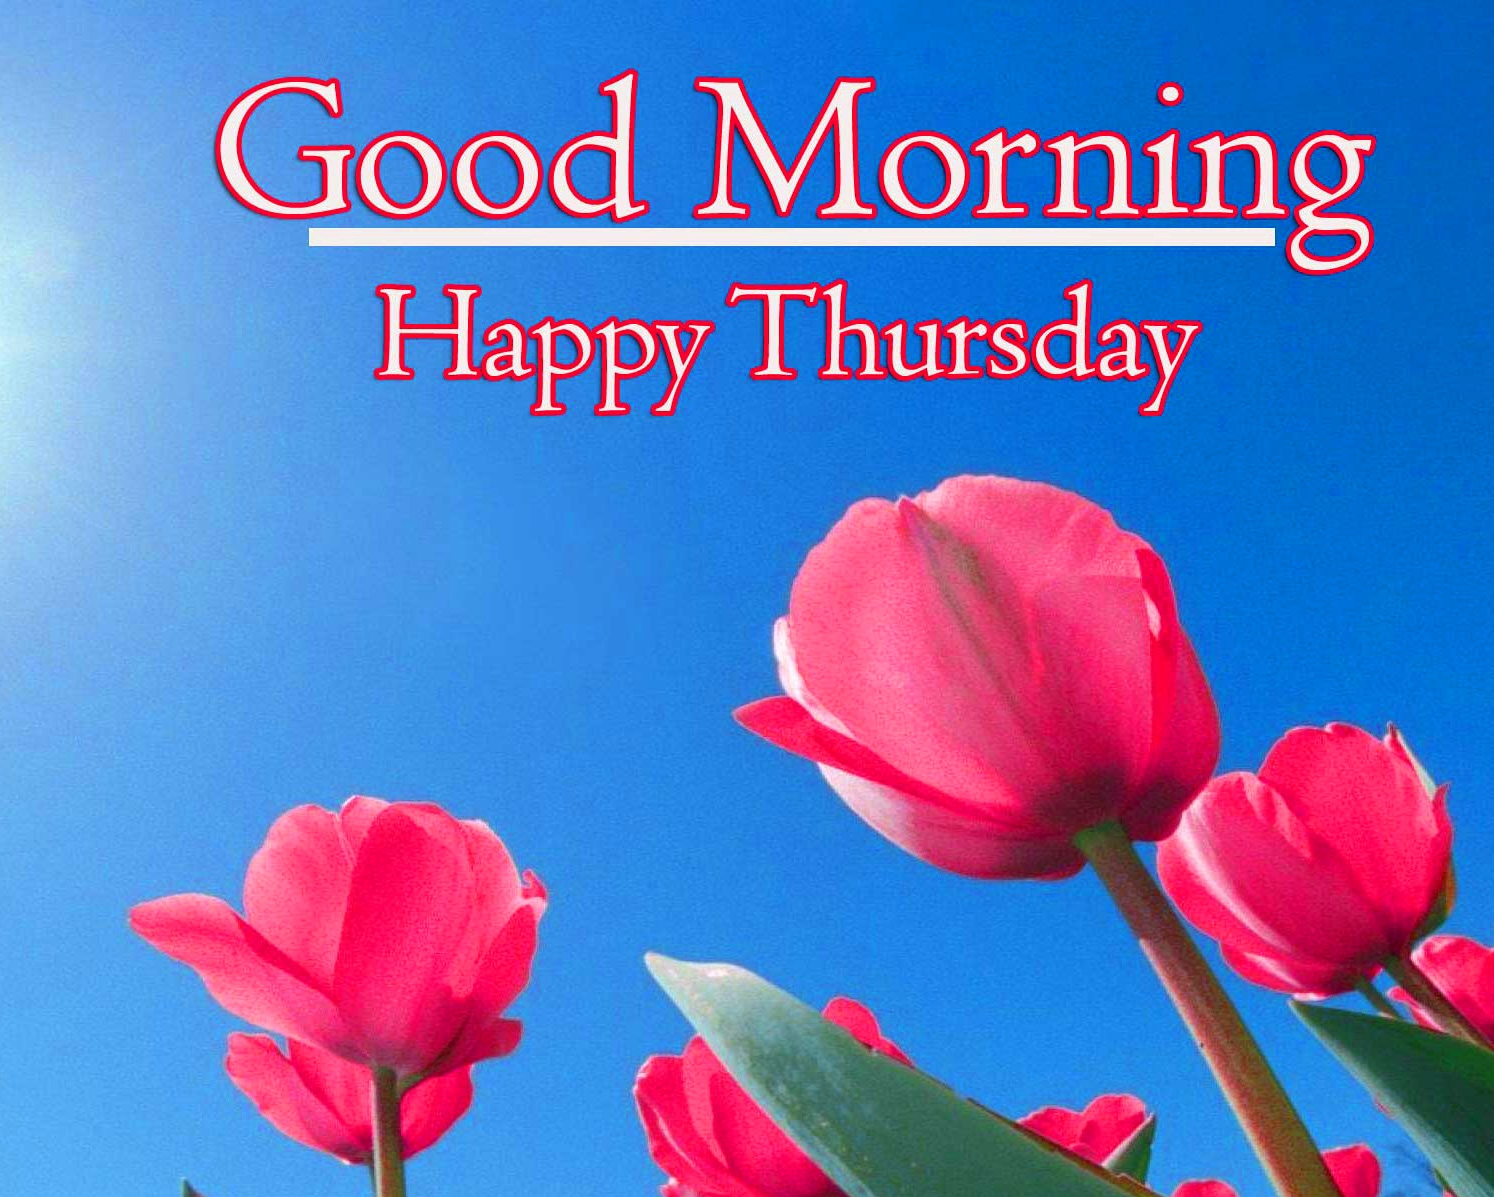 Good Morning Thursday Images Wallpaper New Download